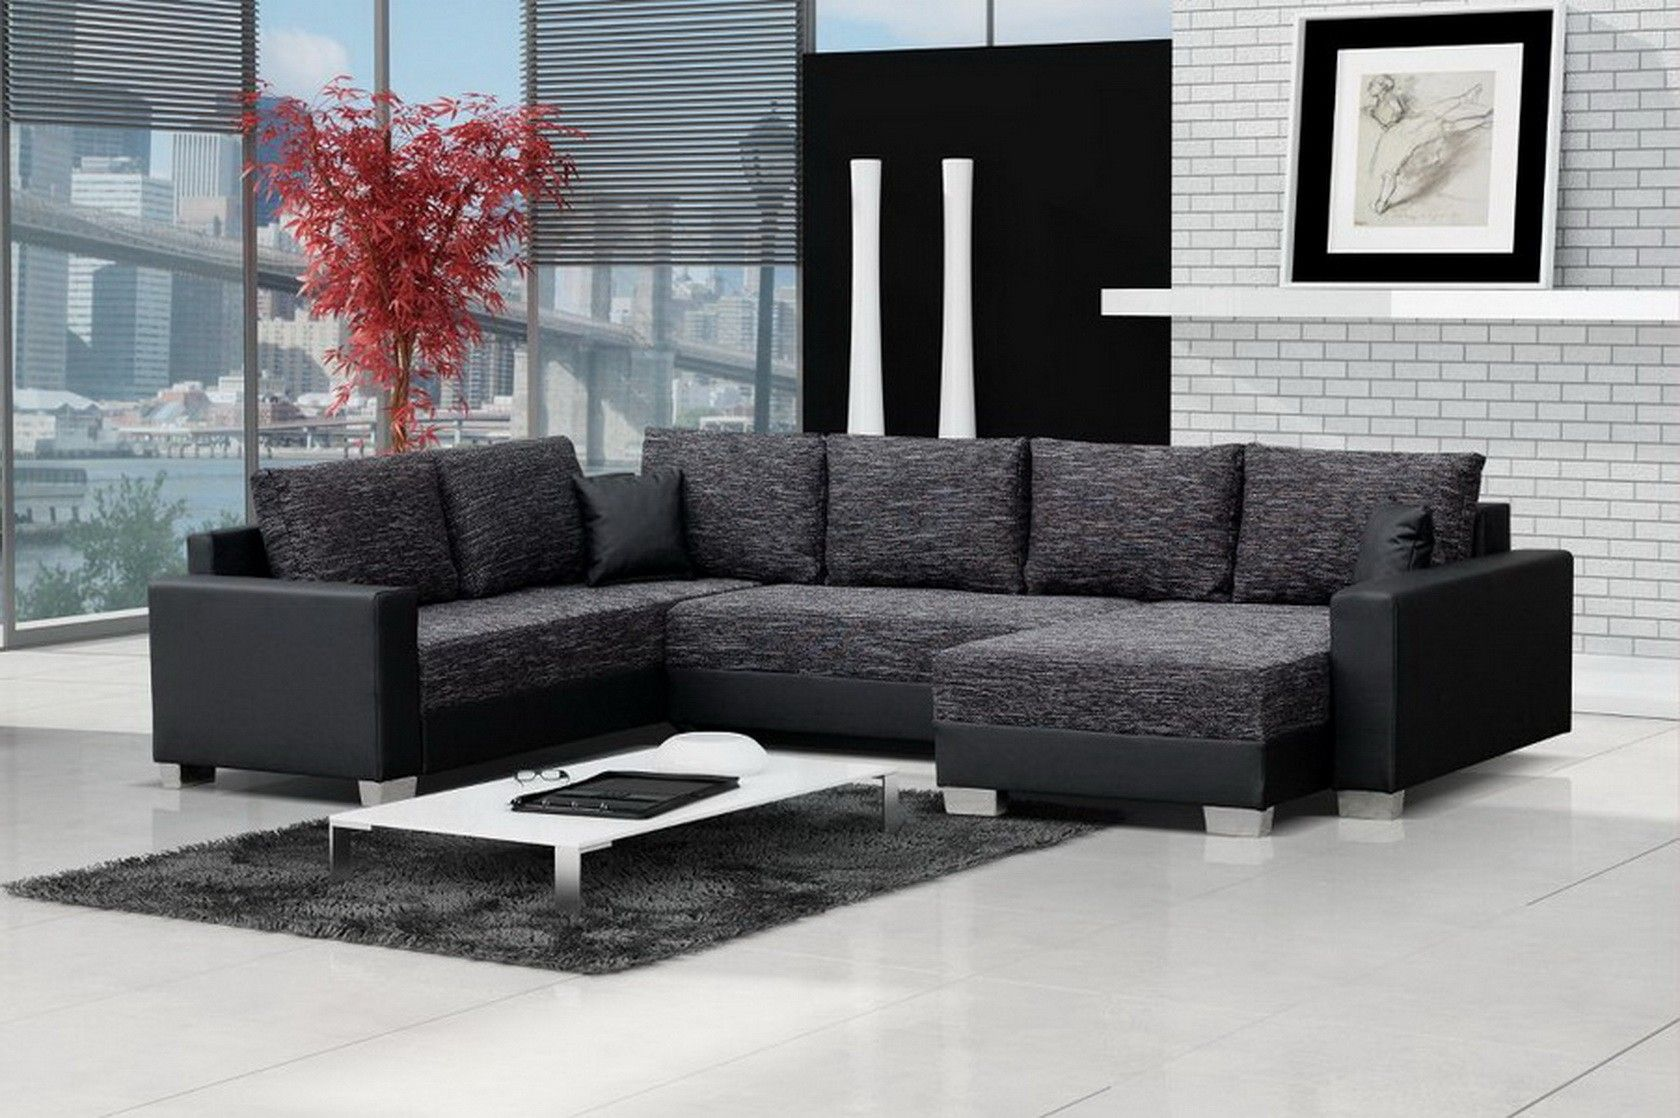 Canap angle droit convertible tissu chin gris anthracite Canape angle gris chine